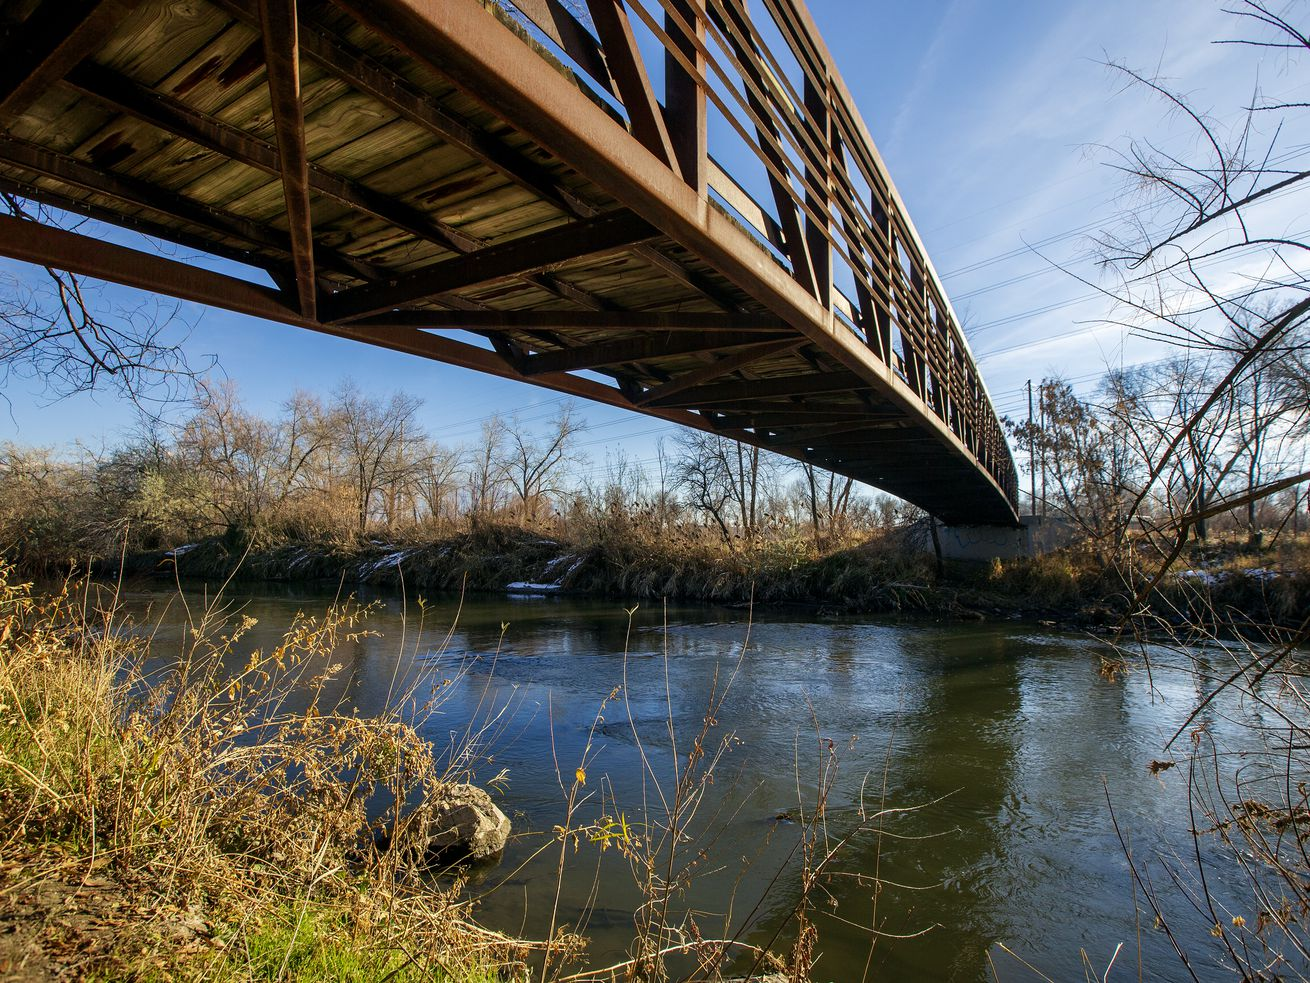 20181126 A bridge crossing the Jordan River at 3900 South in South Salt Lake is pictured on Monday, Nov. 26, 2018. A coalition of city and county leaders announced Monday they're taking the next steps to form the Jordan River Park, with boundaries from state Route 201 to about 4500 South along the river, will prioritize preserving the Jordan River Parkway's natural habitat while creating more recreation opportunities and better access for Salt Lake County families.